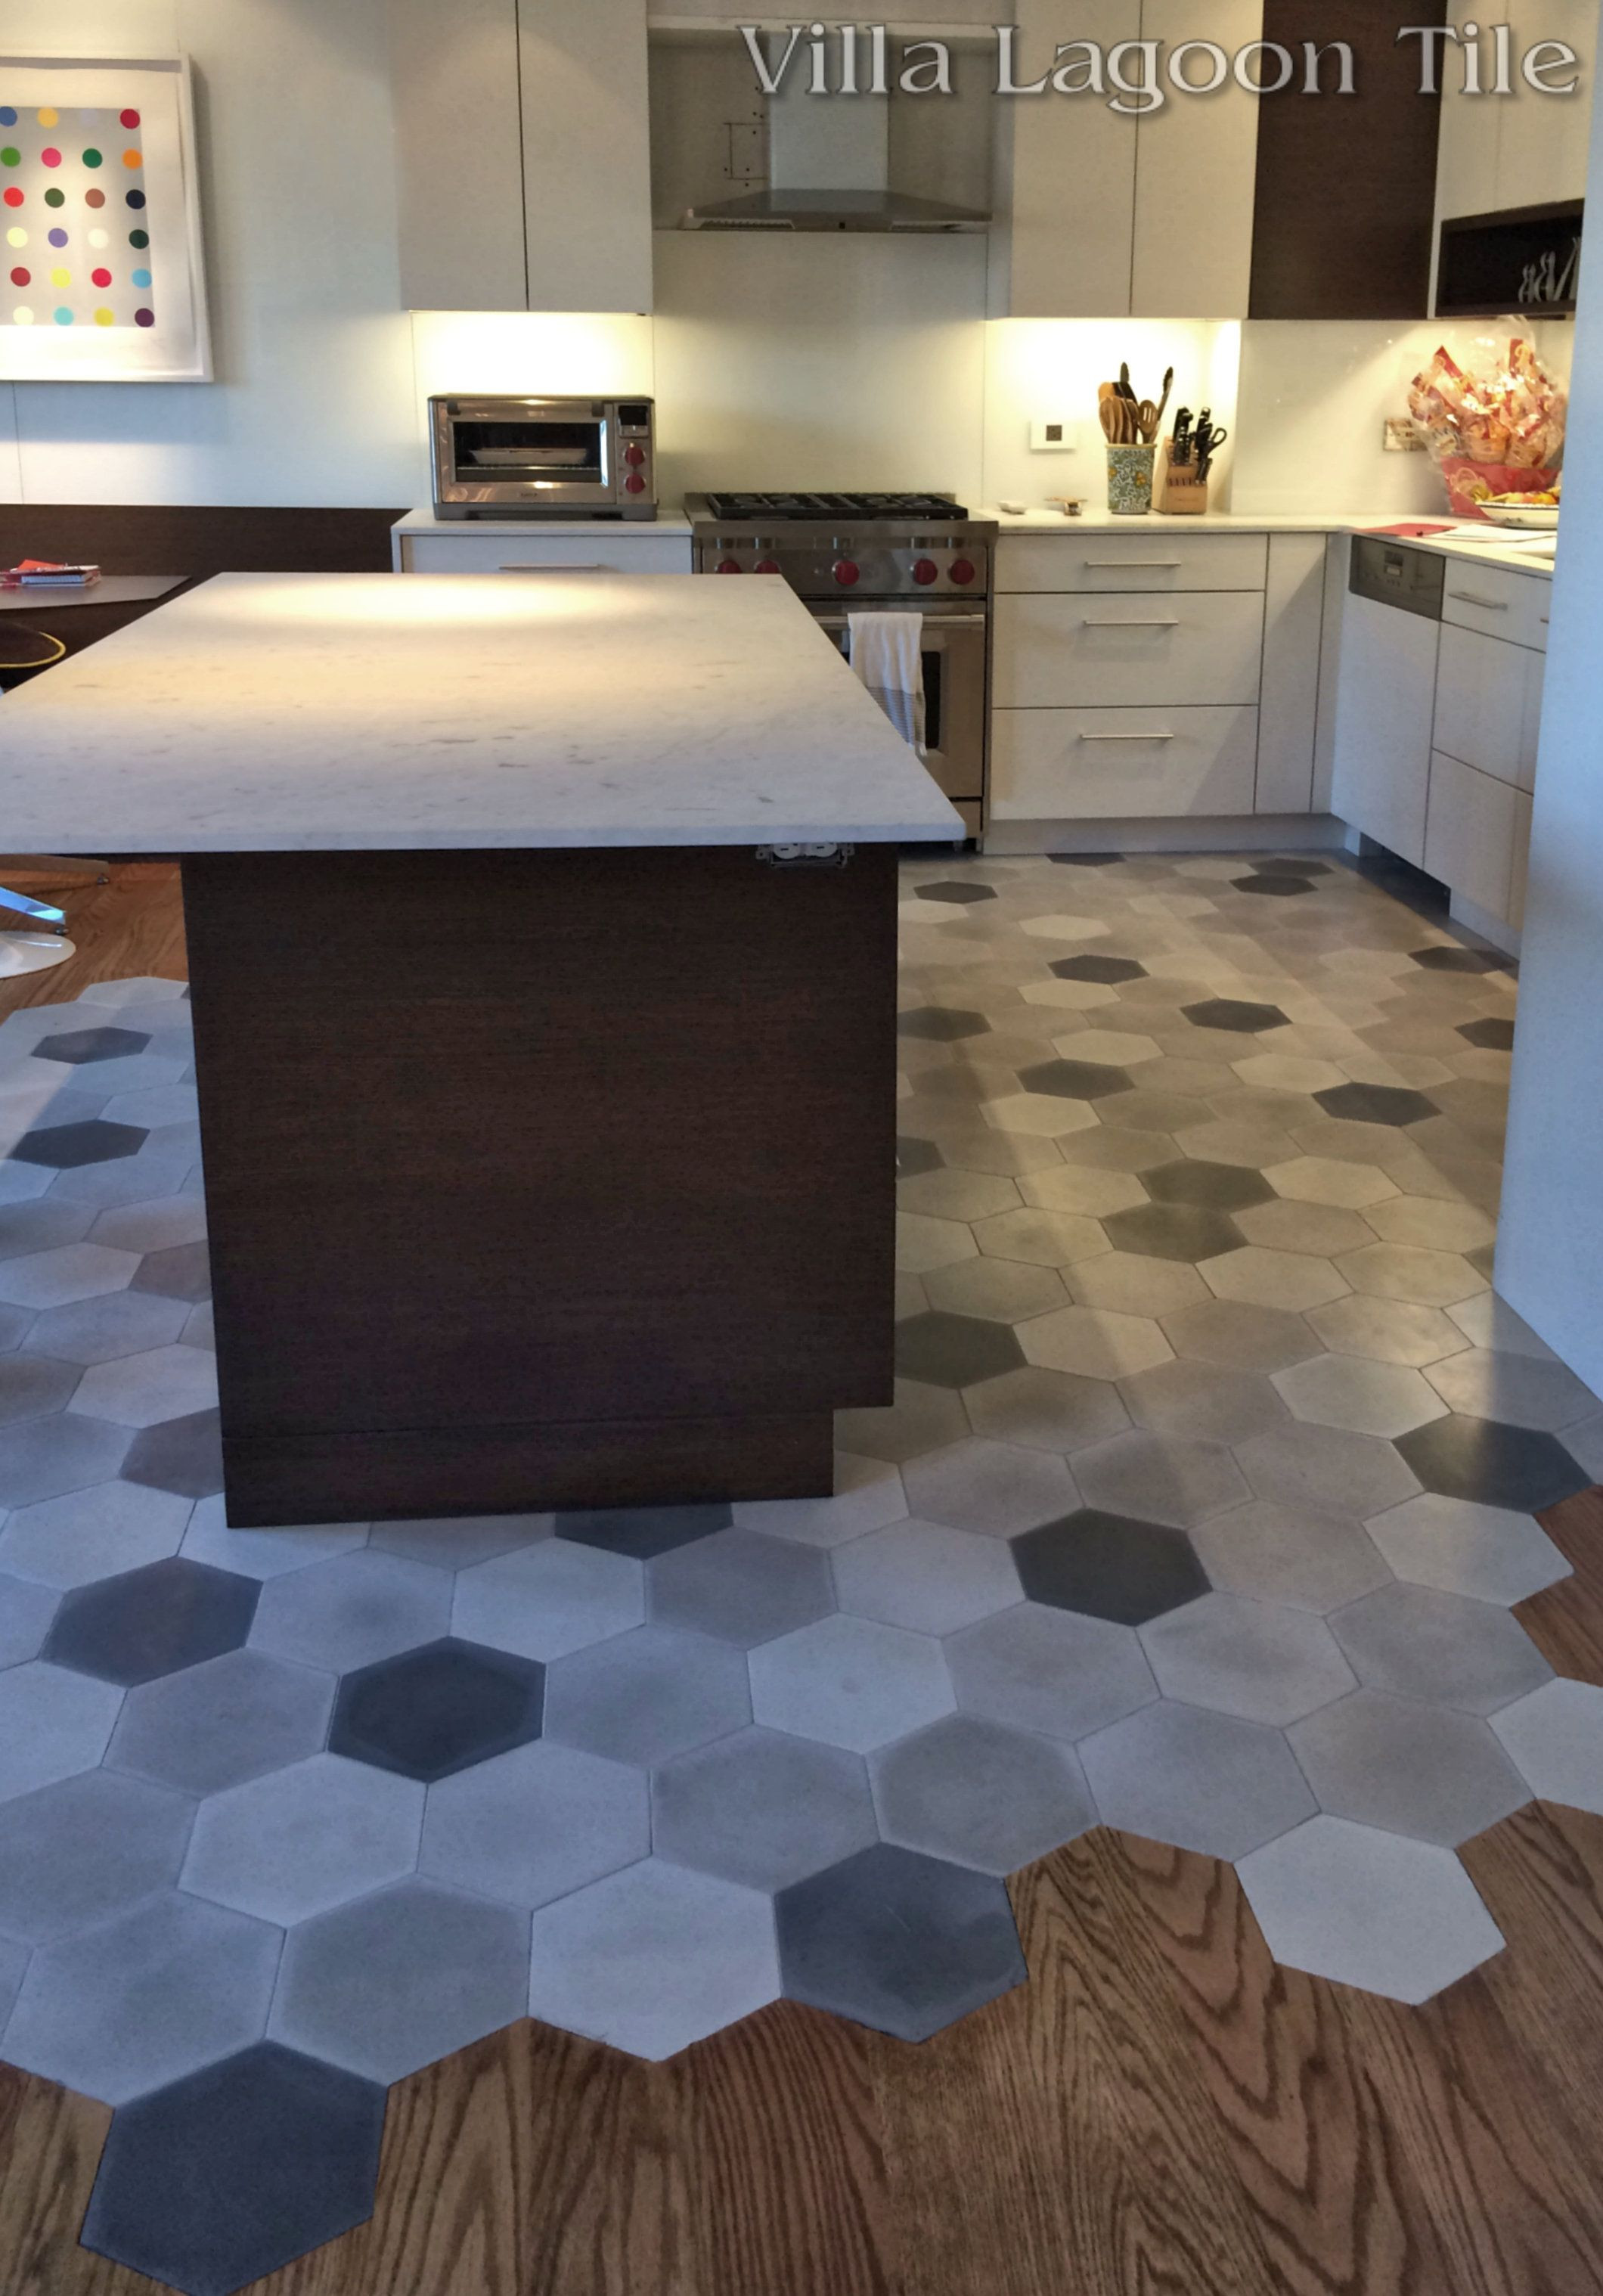 Wholesale Hardwood Flooring Dallas Of This Beautiful New York City Installation Flows Hardwood Floors Into for This Beautiful New York City Installation Flows Hardwood Floors Into Our Mixed Gray Hex Cement Tile